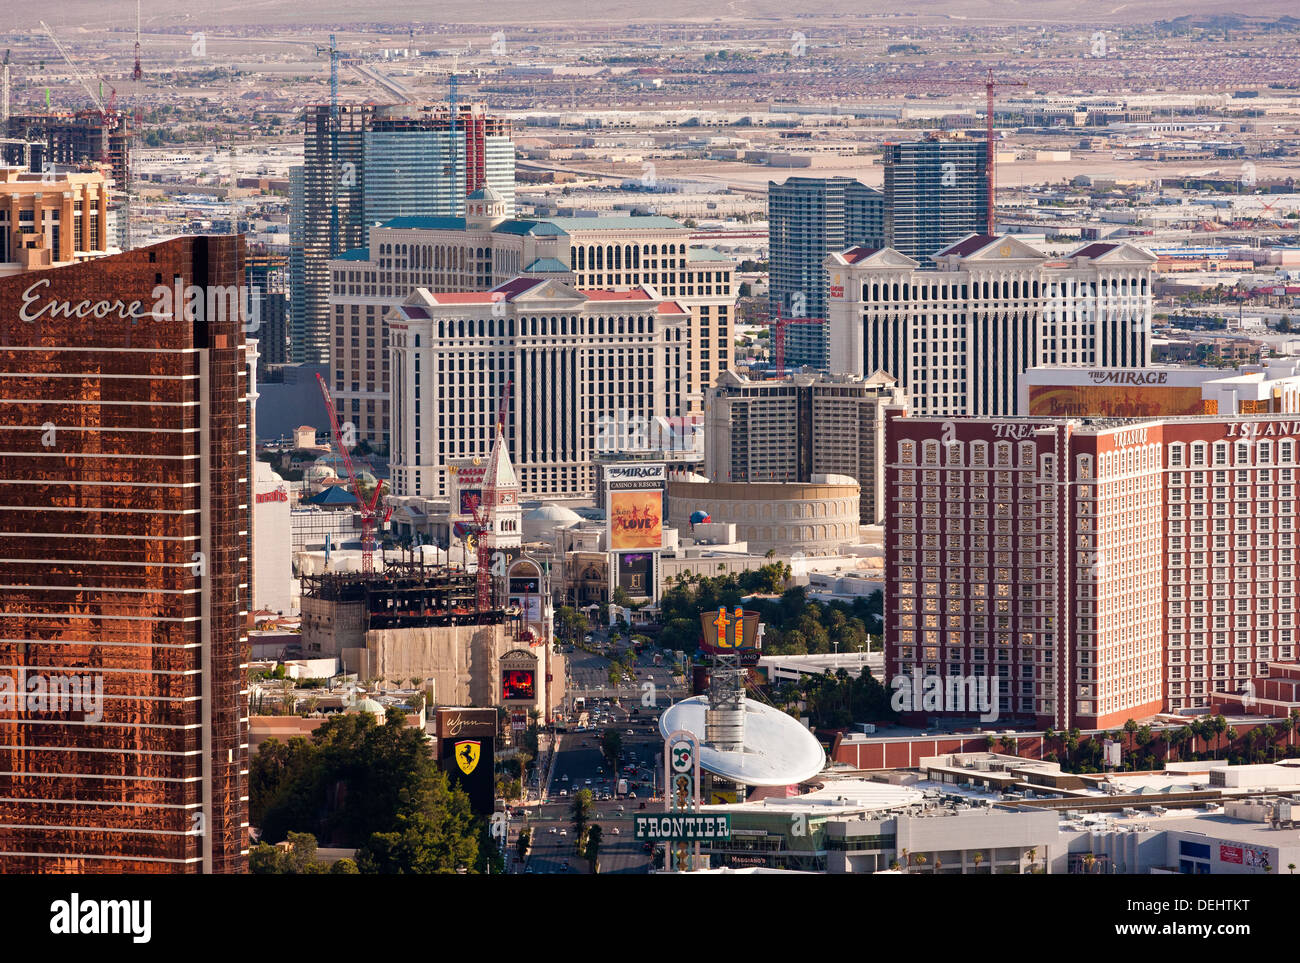 Las Vegas Nevada USA The Strip with The Mirage, Caesars Palace and The Bellagio from the tower of the Stratosphere. JMH5460 - Stock Image